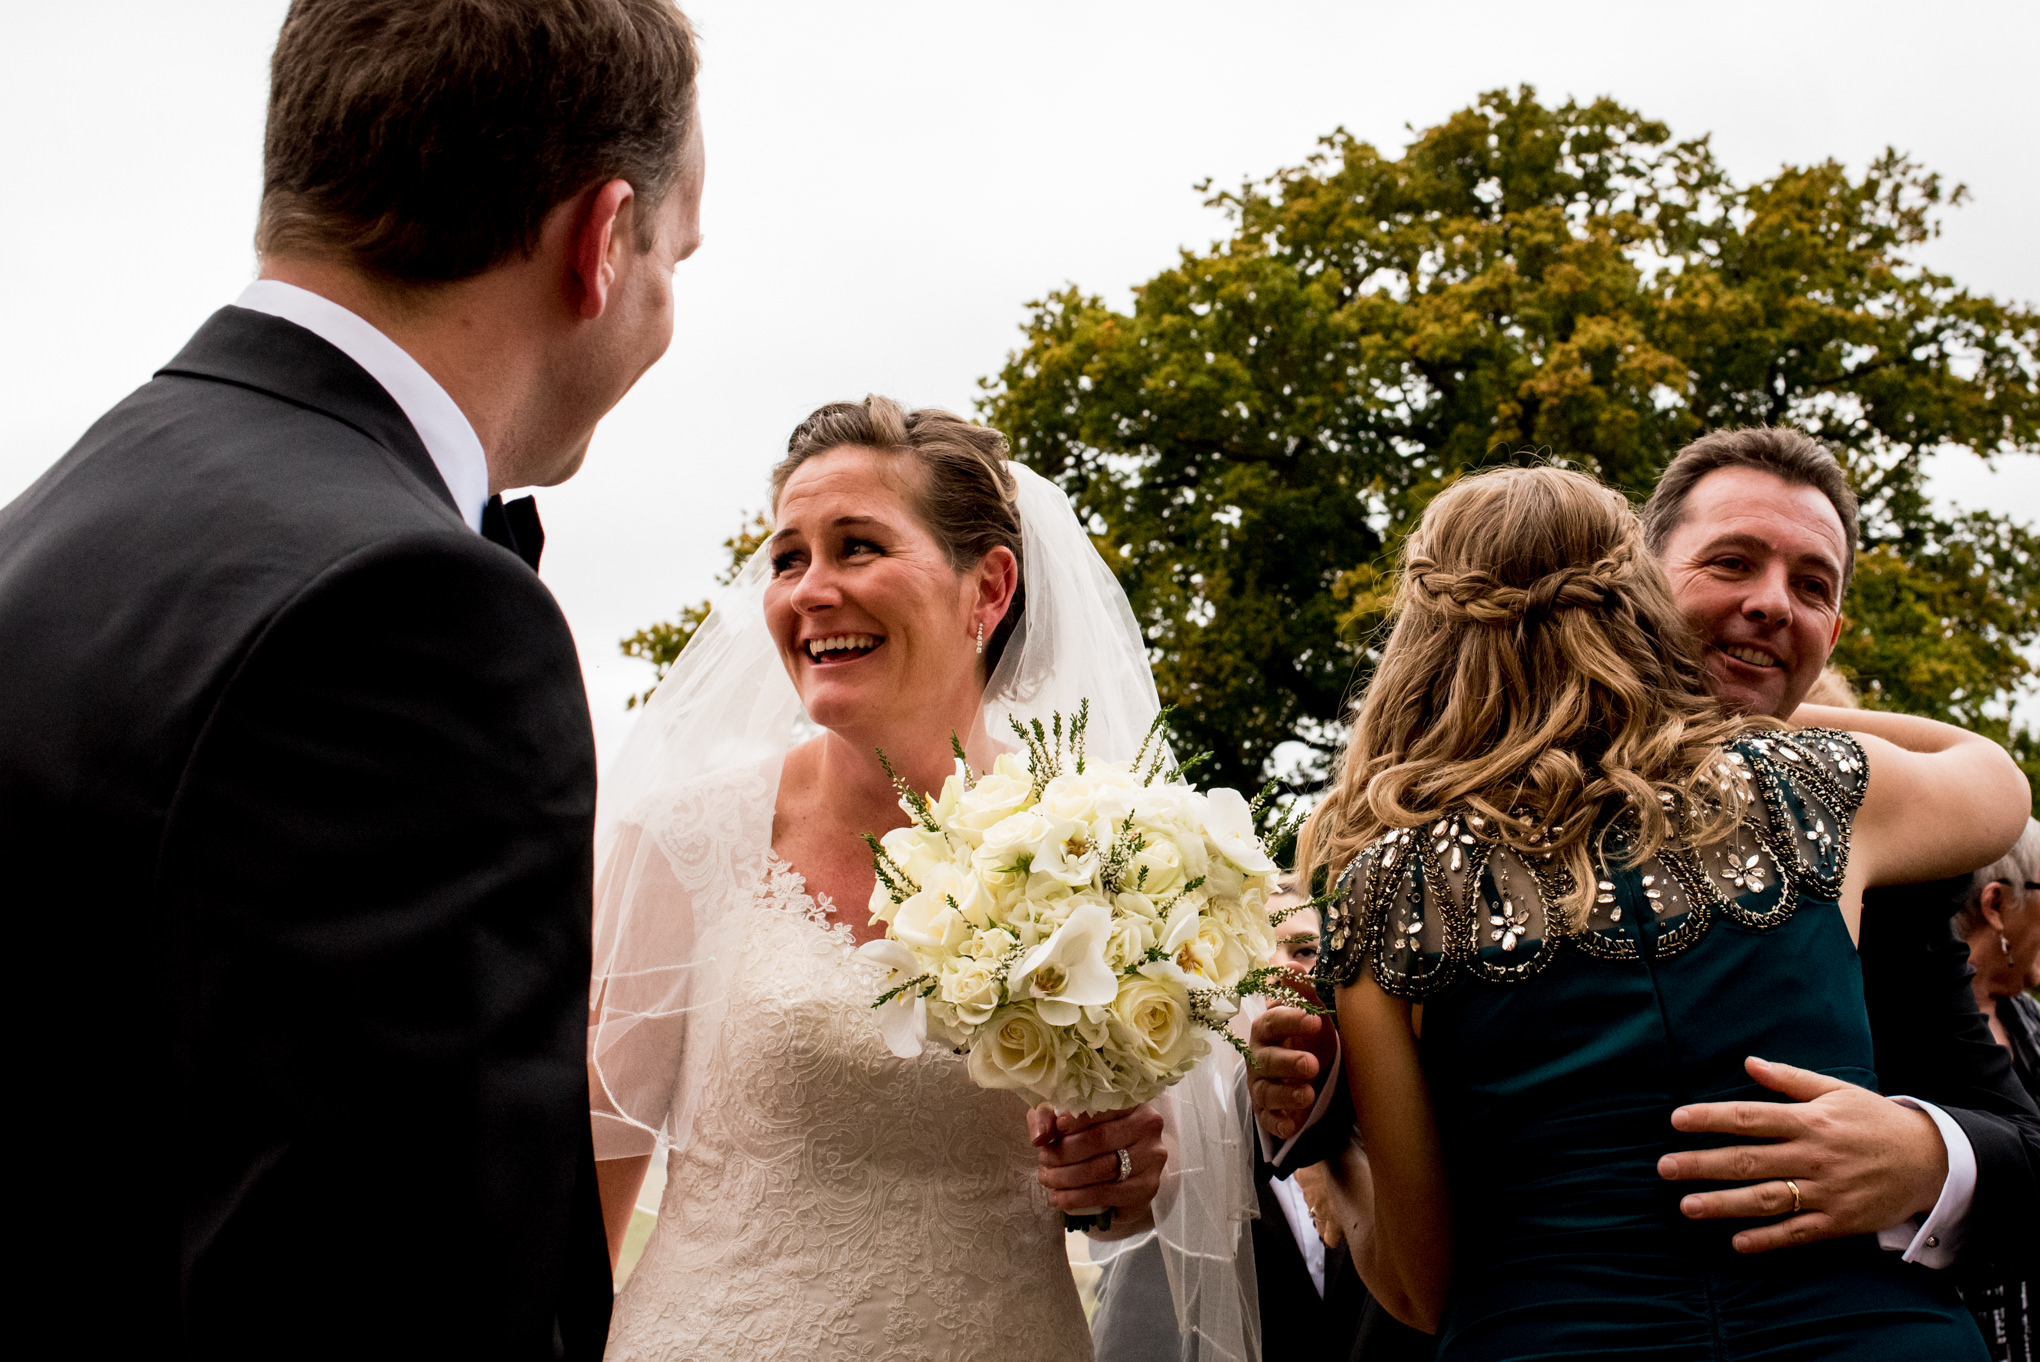 carine bea photography, london wedding photography, london wedding photographer, documentary wedding photographer, Botleys Mansion photography, Botleys Mansion wedding, Botleys Mansion wedding photographer, Botleys Mansion wedding photography